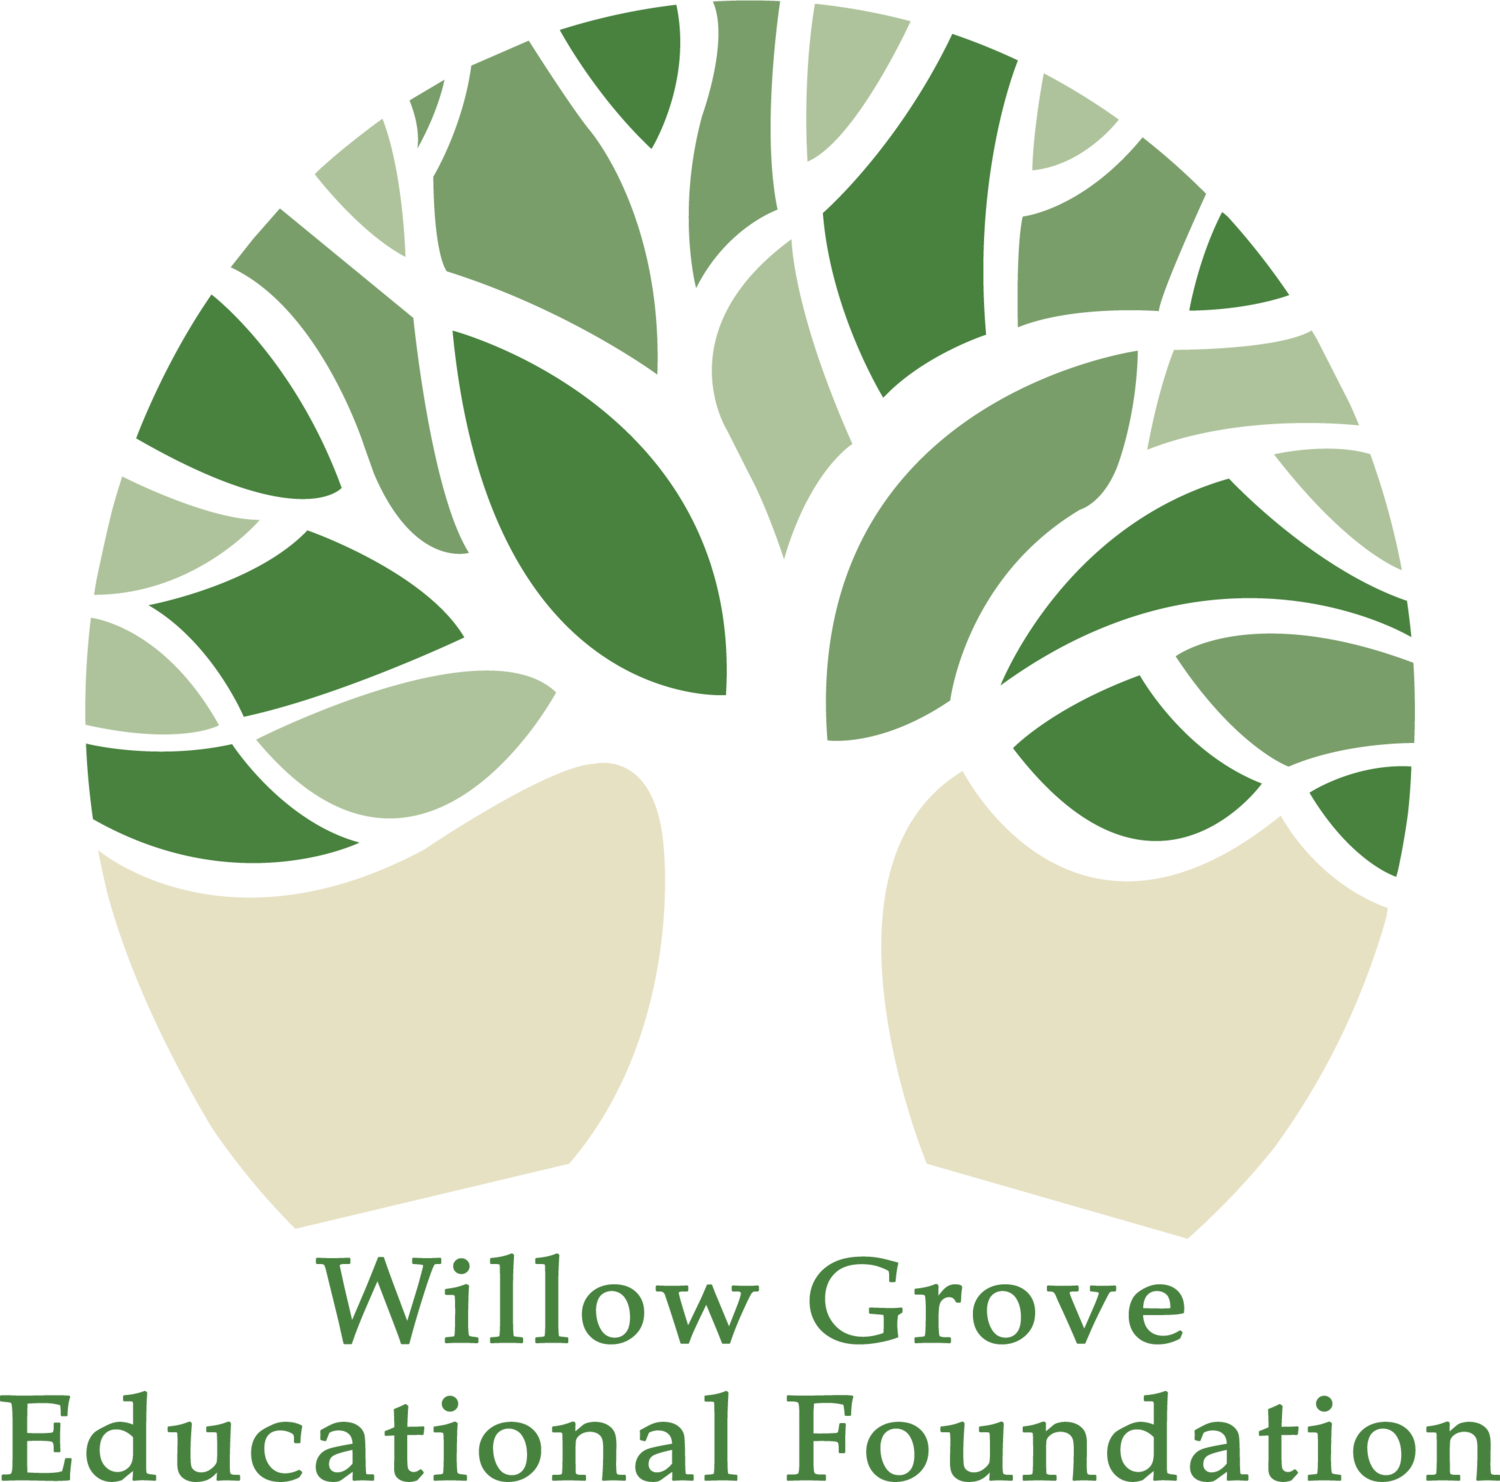 Willow Grove Educational Foundation